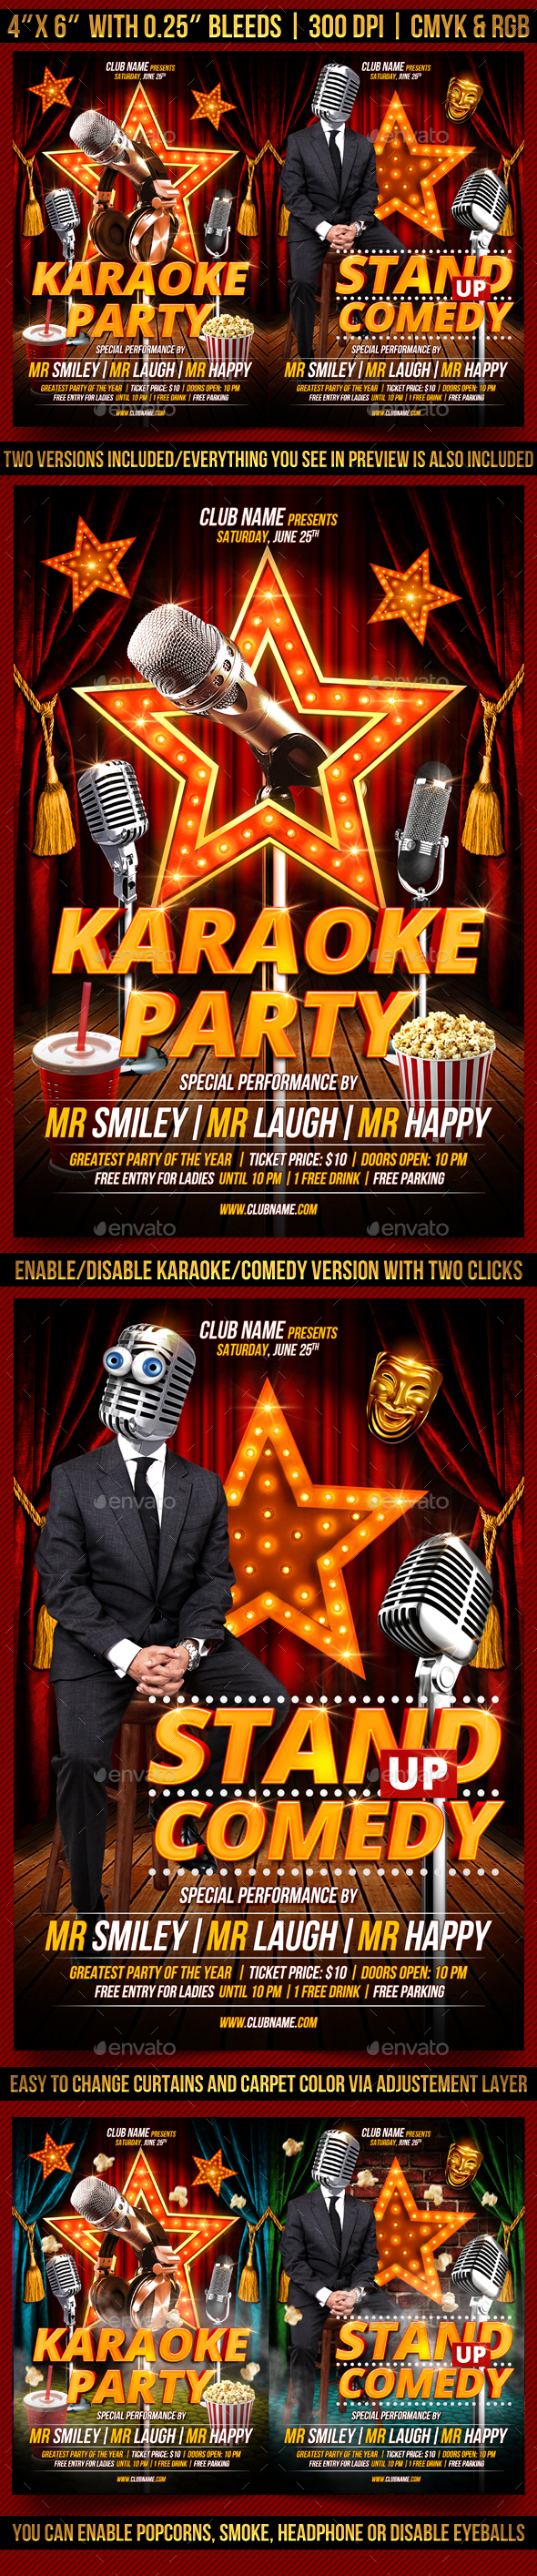 Karaoke and Comedy Flyer Template - Clubs & Parties Events